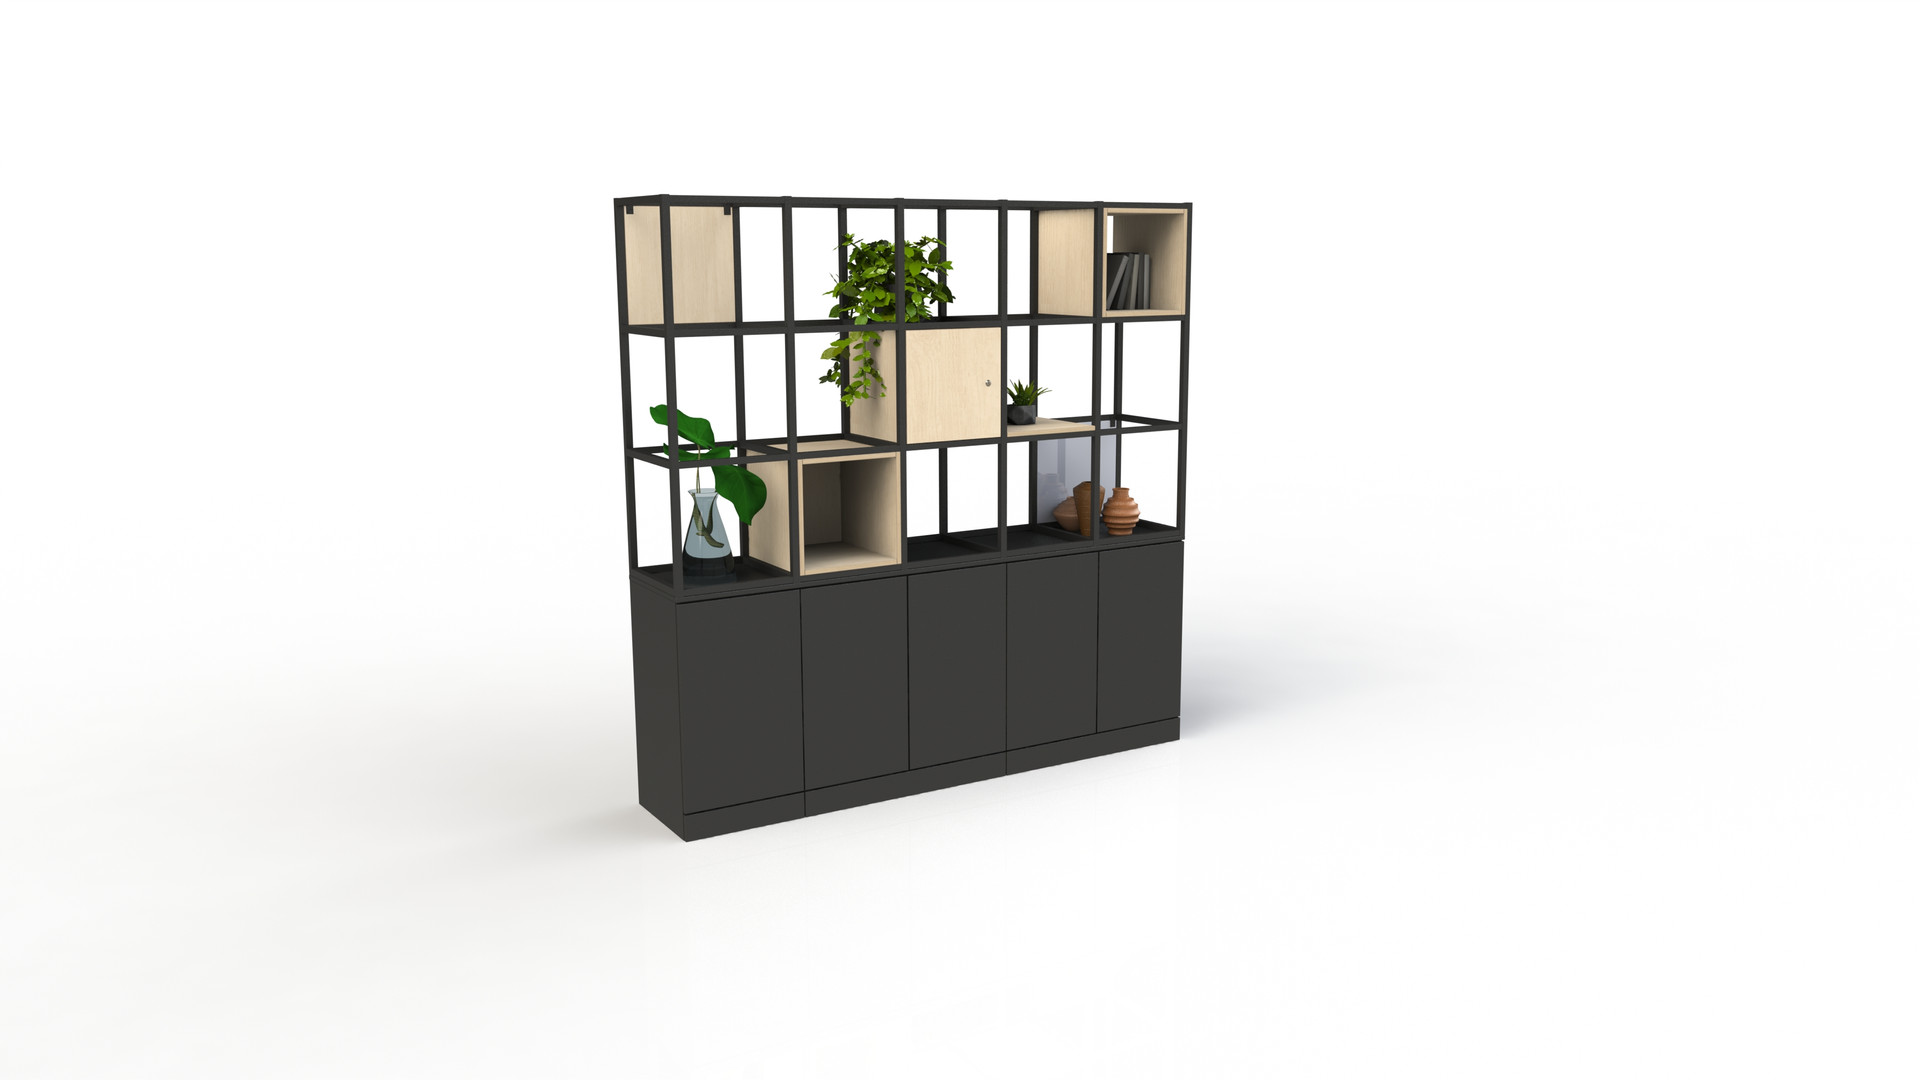 Freewall Qube render 3